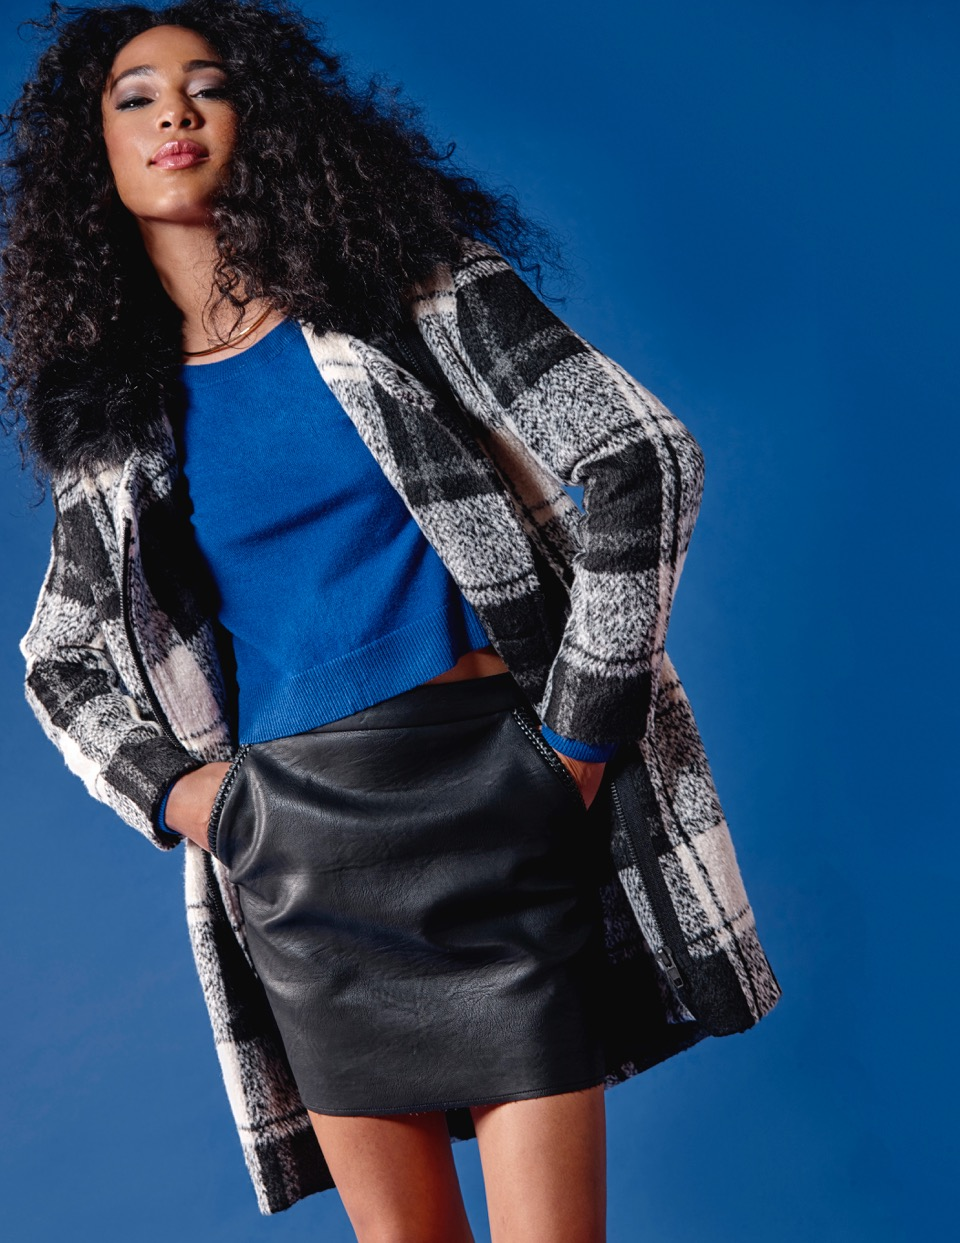 Statement Coats are a must this season, as they are the perfect topper on your already perfect outfit. Another thing this coat has going for it - the removable fur collar.  John & Jenn Plaid Coat $349 Autumn Cashmere Sweater $330 Suncoo Leather Mini Skirt $180